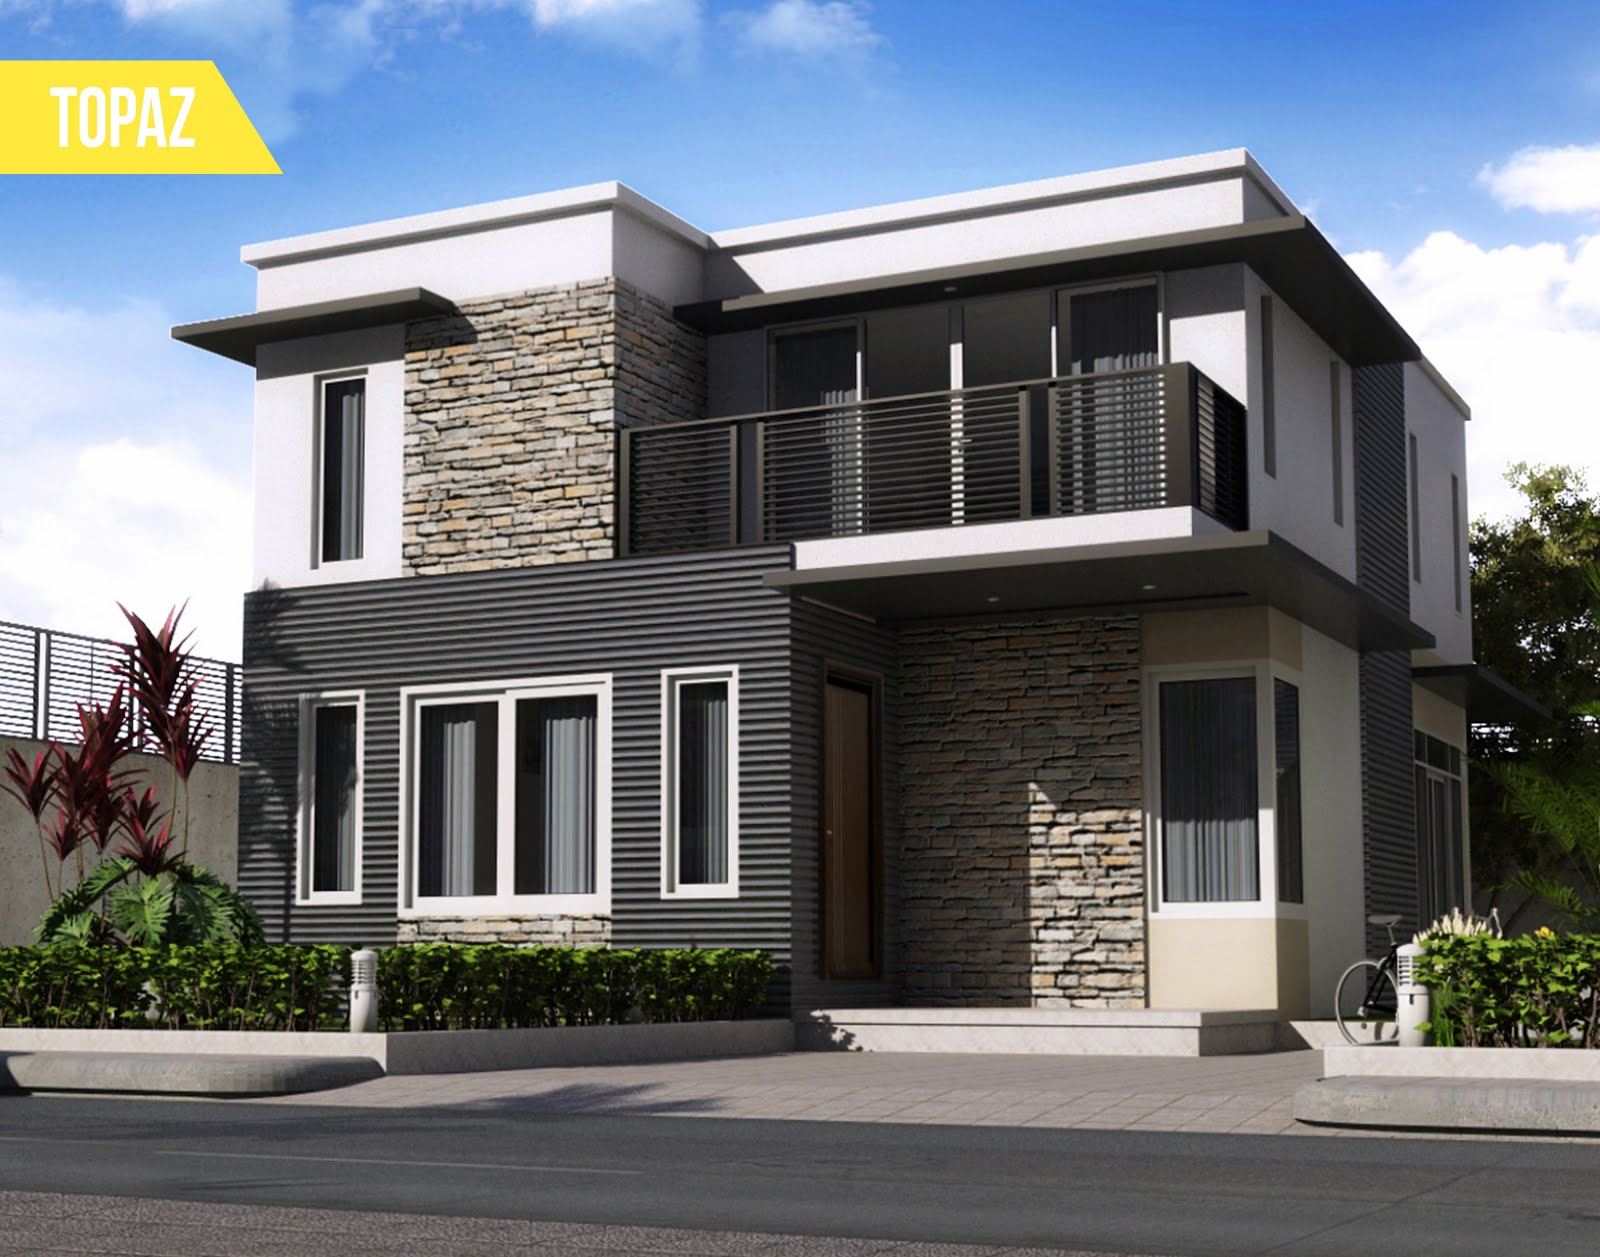 A Smart Philippine House Builder: All About Philippine ...